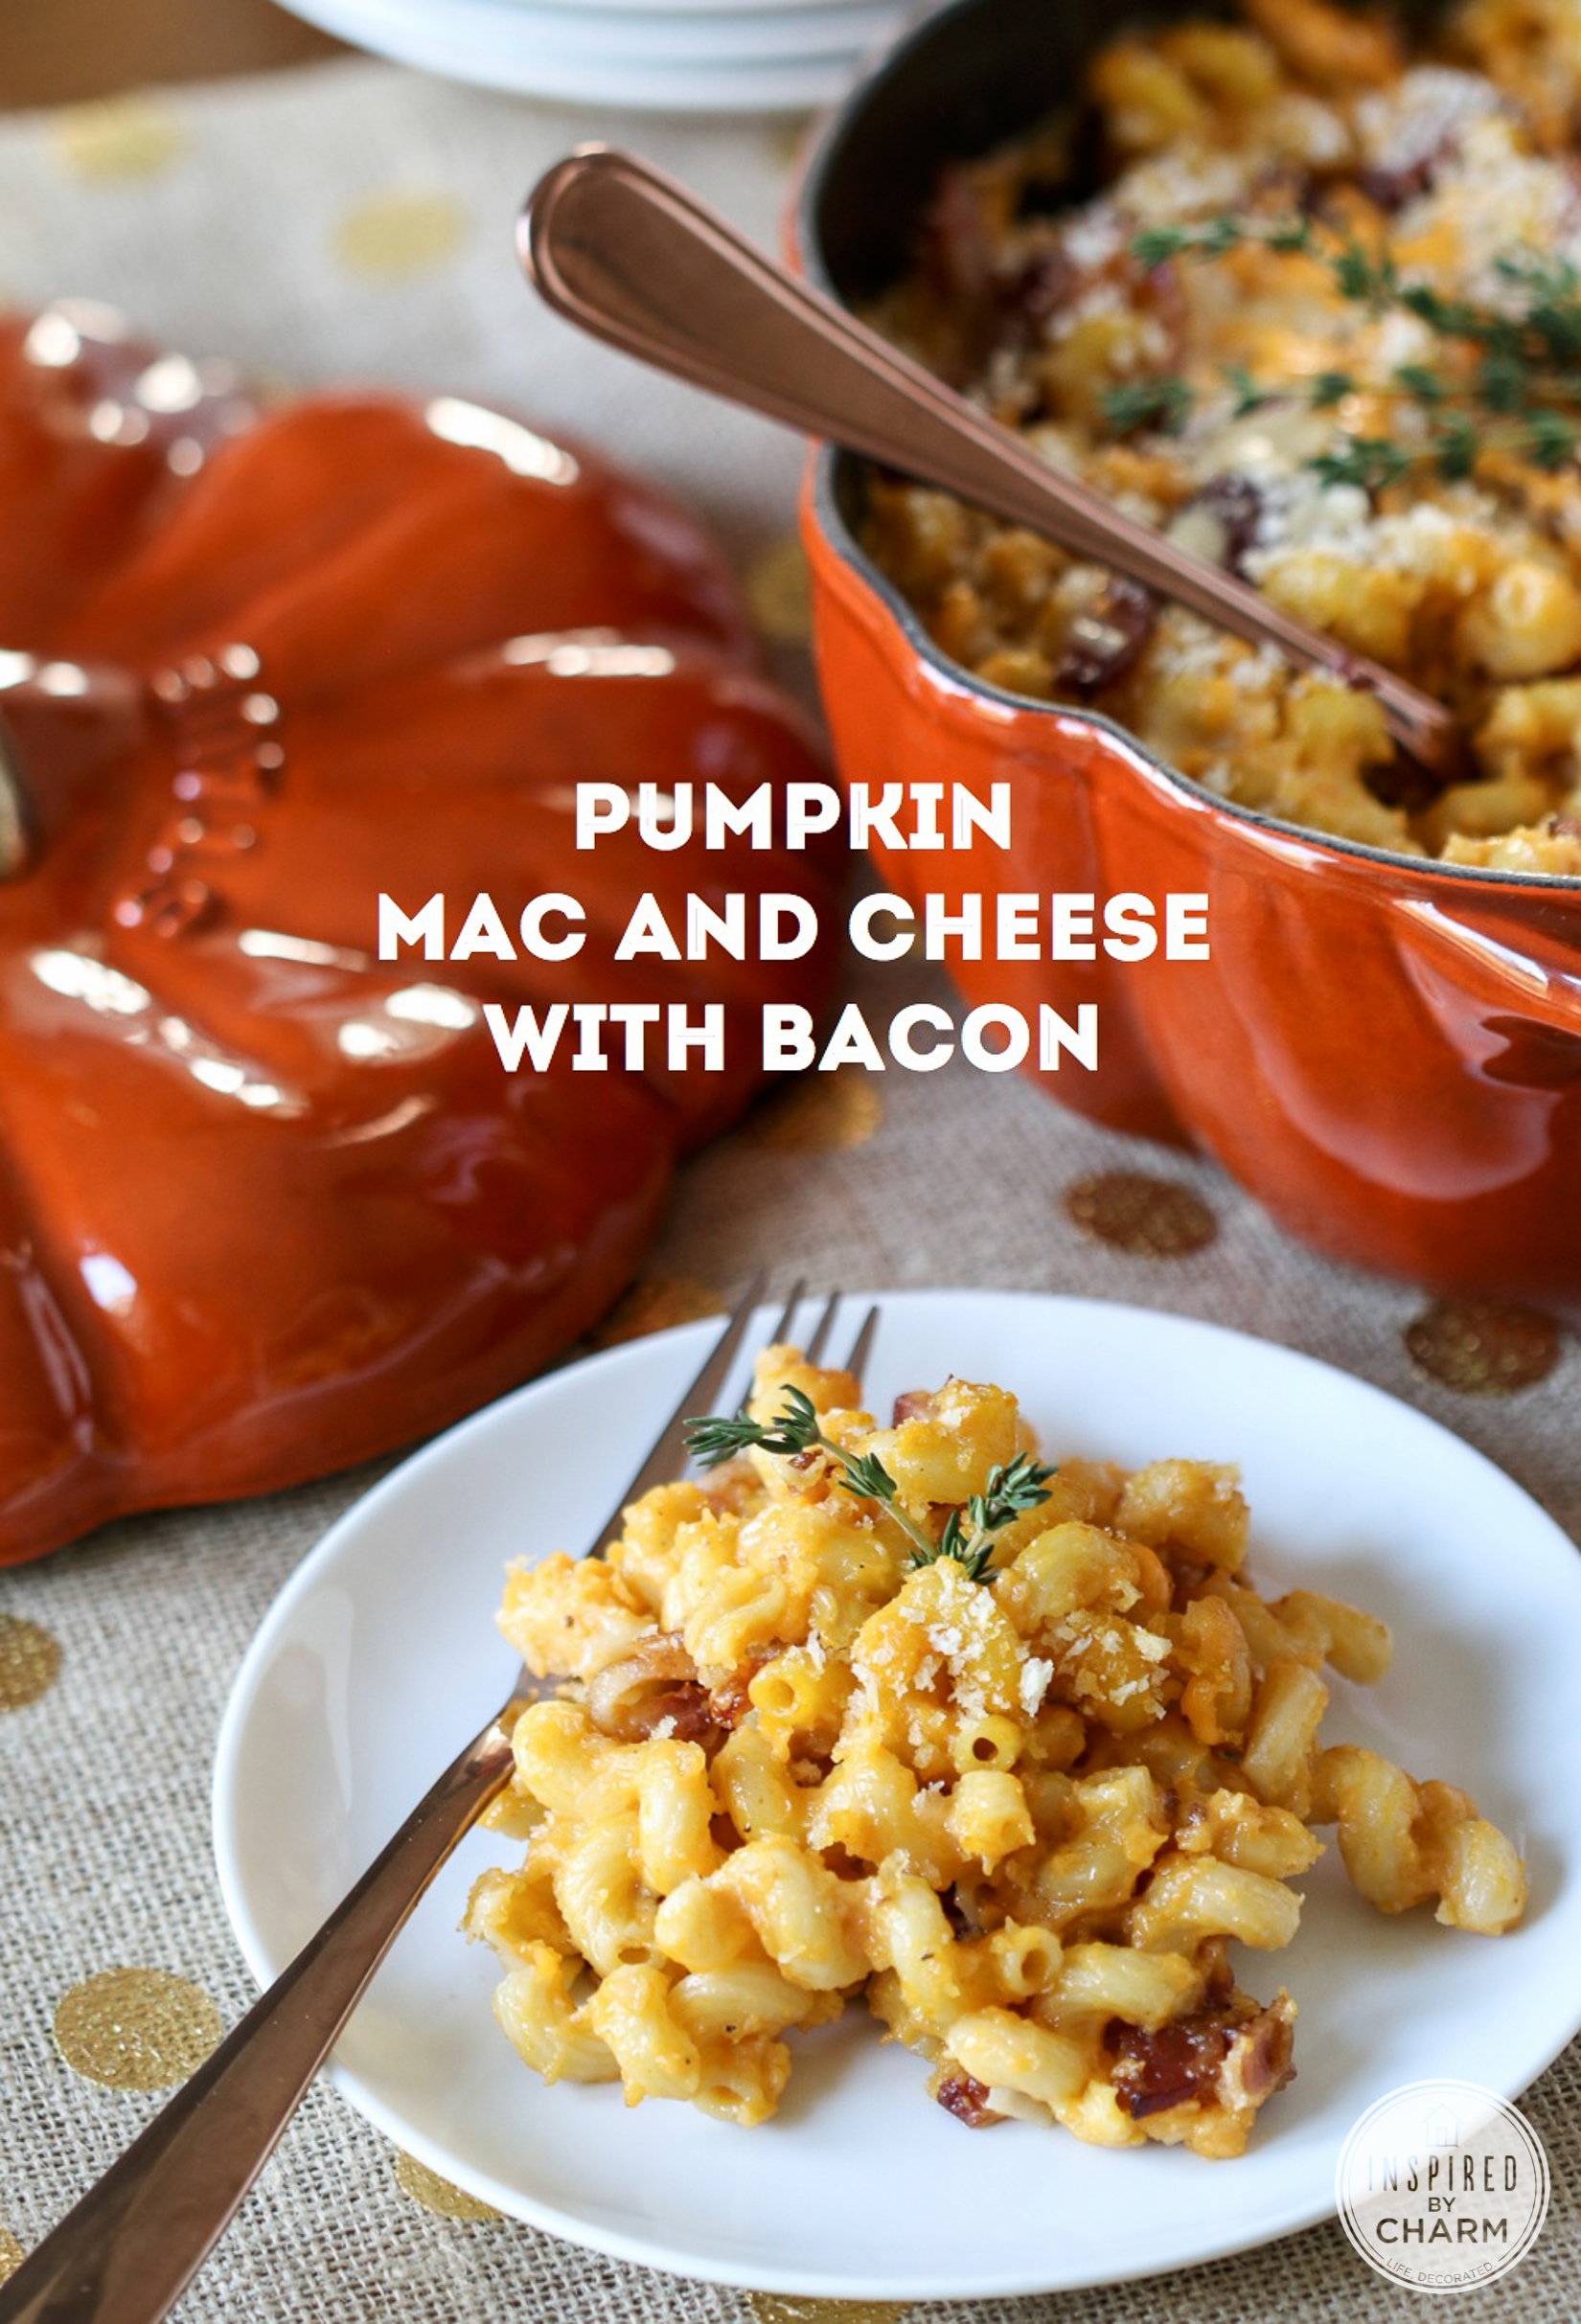 ... Pumpkin Mac and Cheese with Bacon would be the perfect compromise